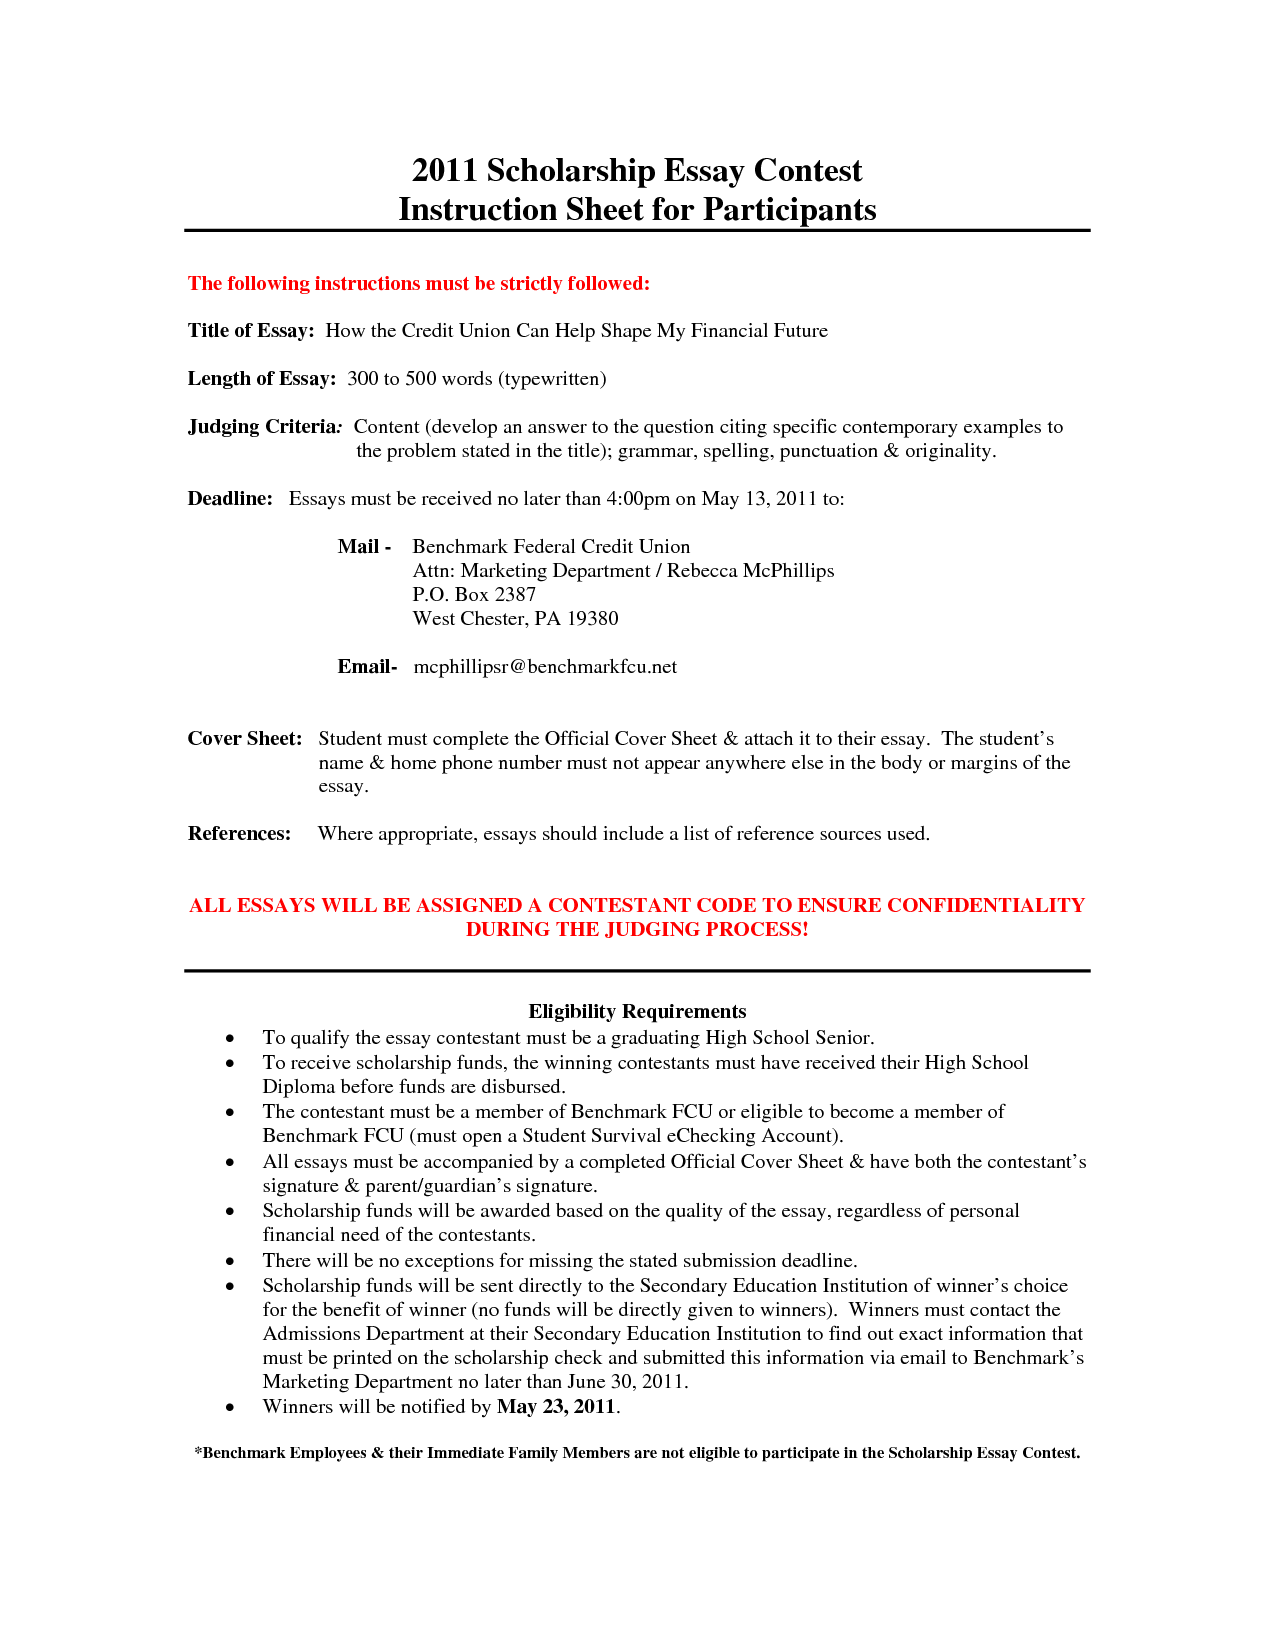 scholarship financial need essay examples fastweb scholarships - Example Essays For Scholarships